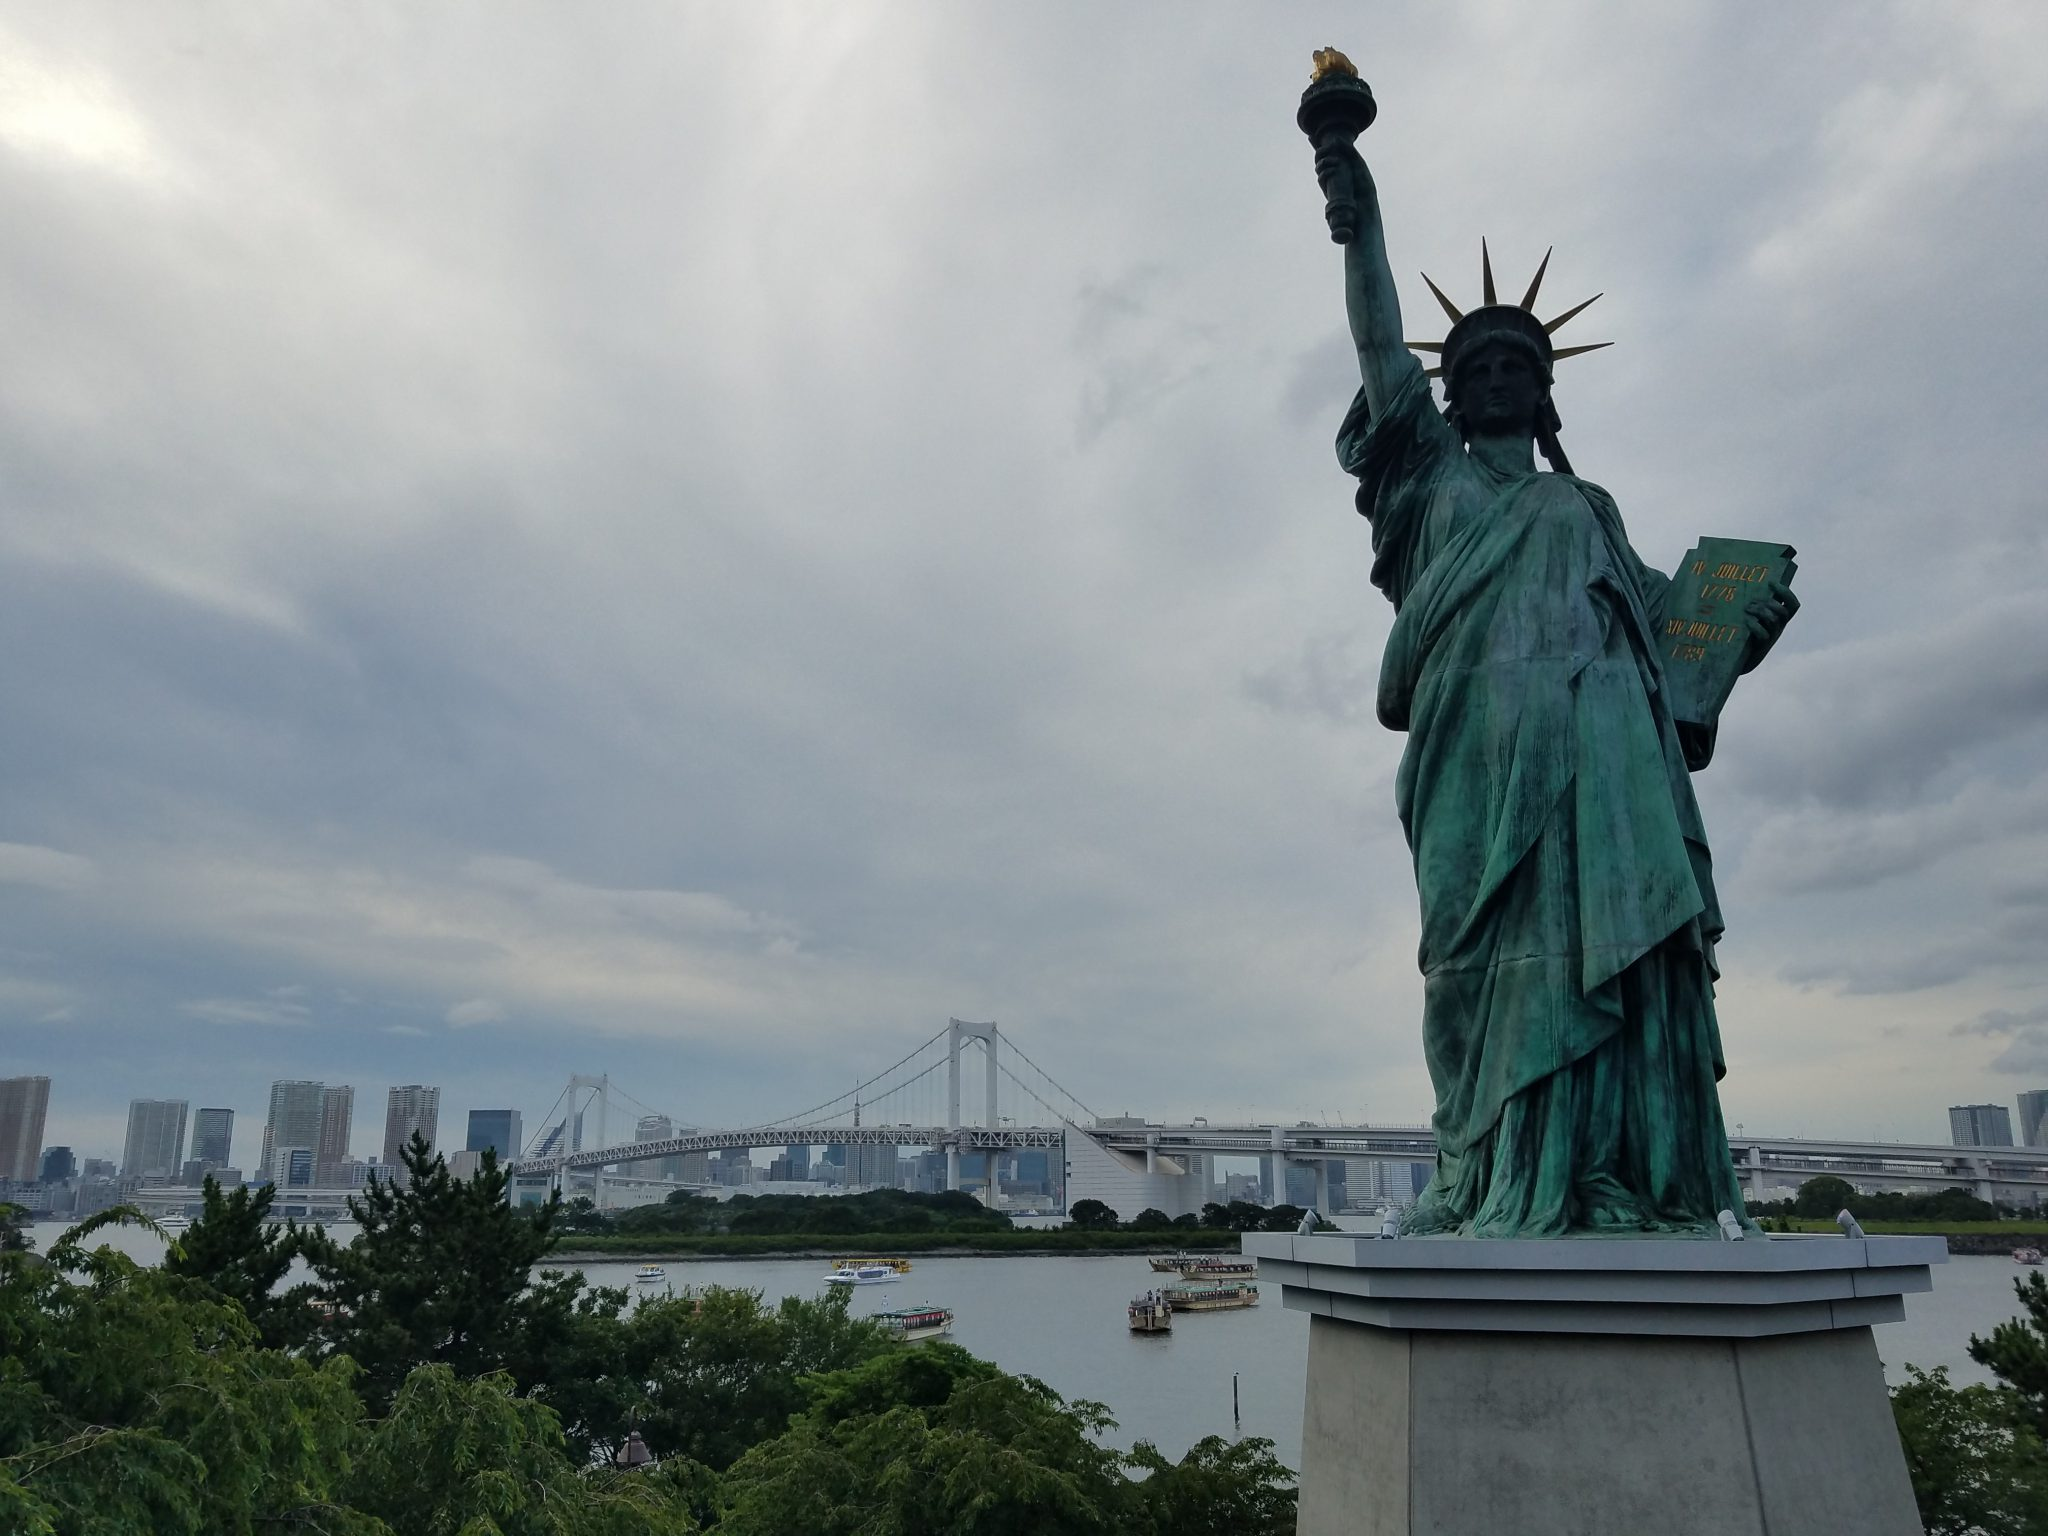 Statue of Liberty Odaiba seen on a Maction Planet Tokyo Private Tour